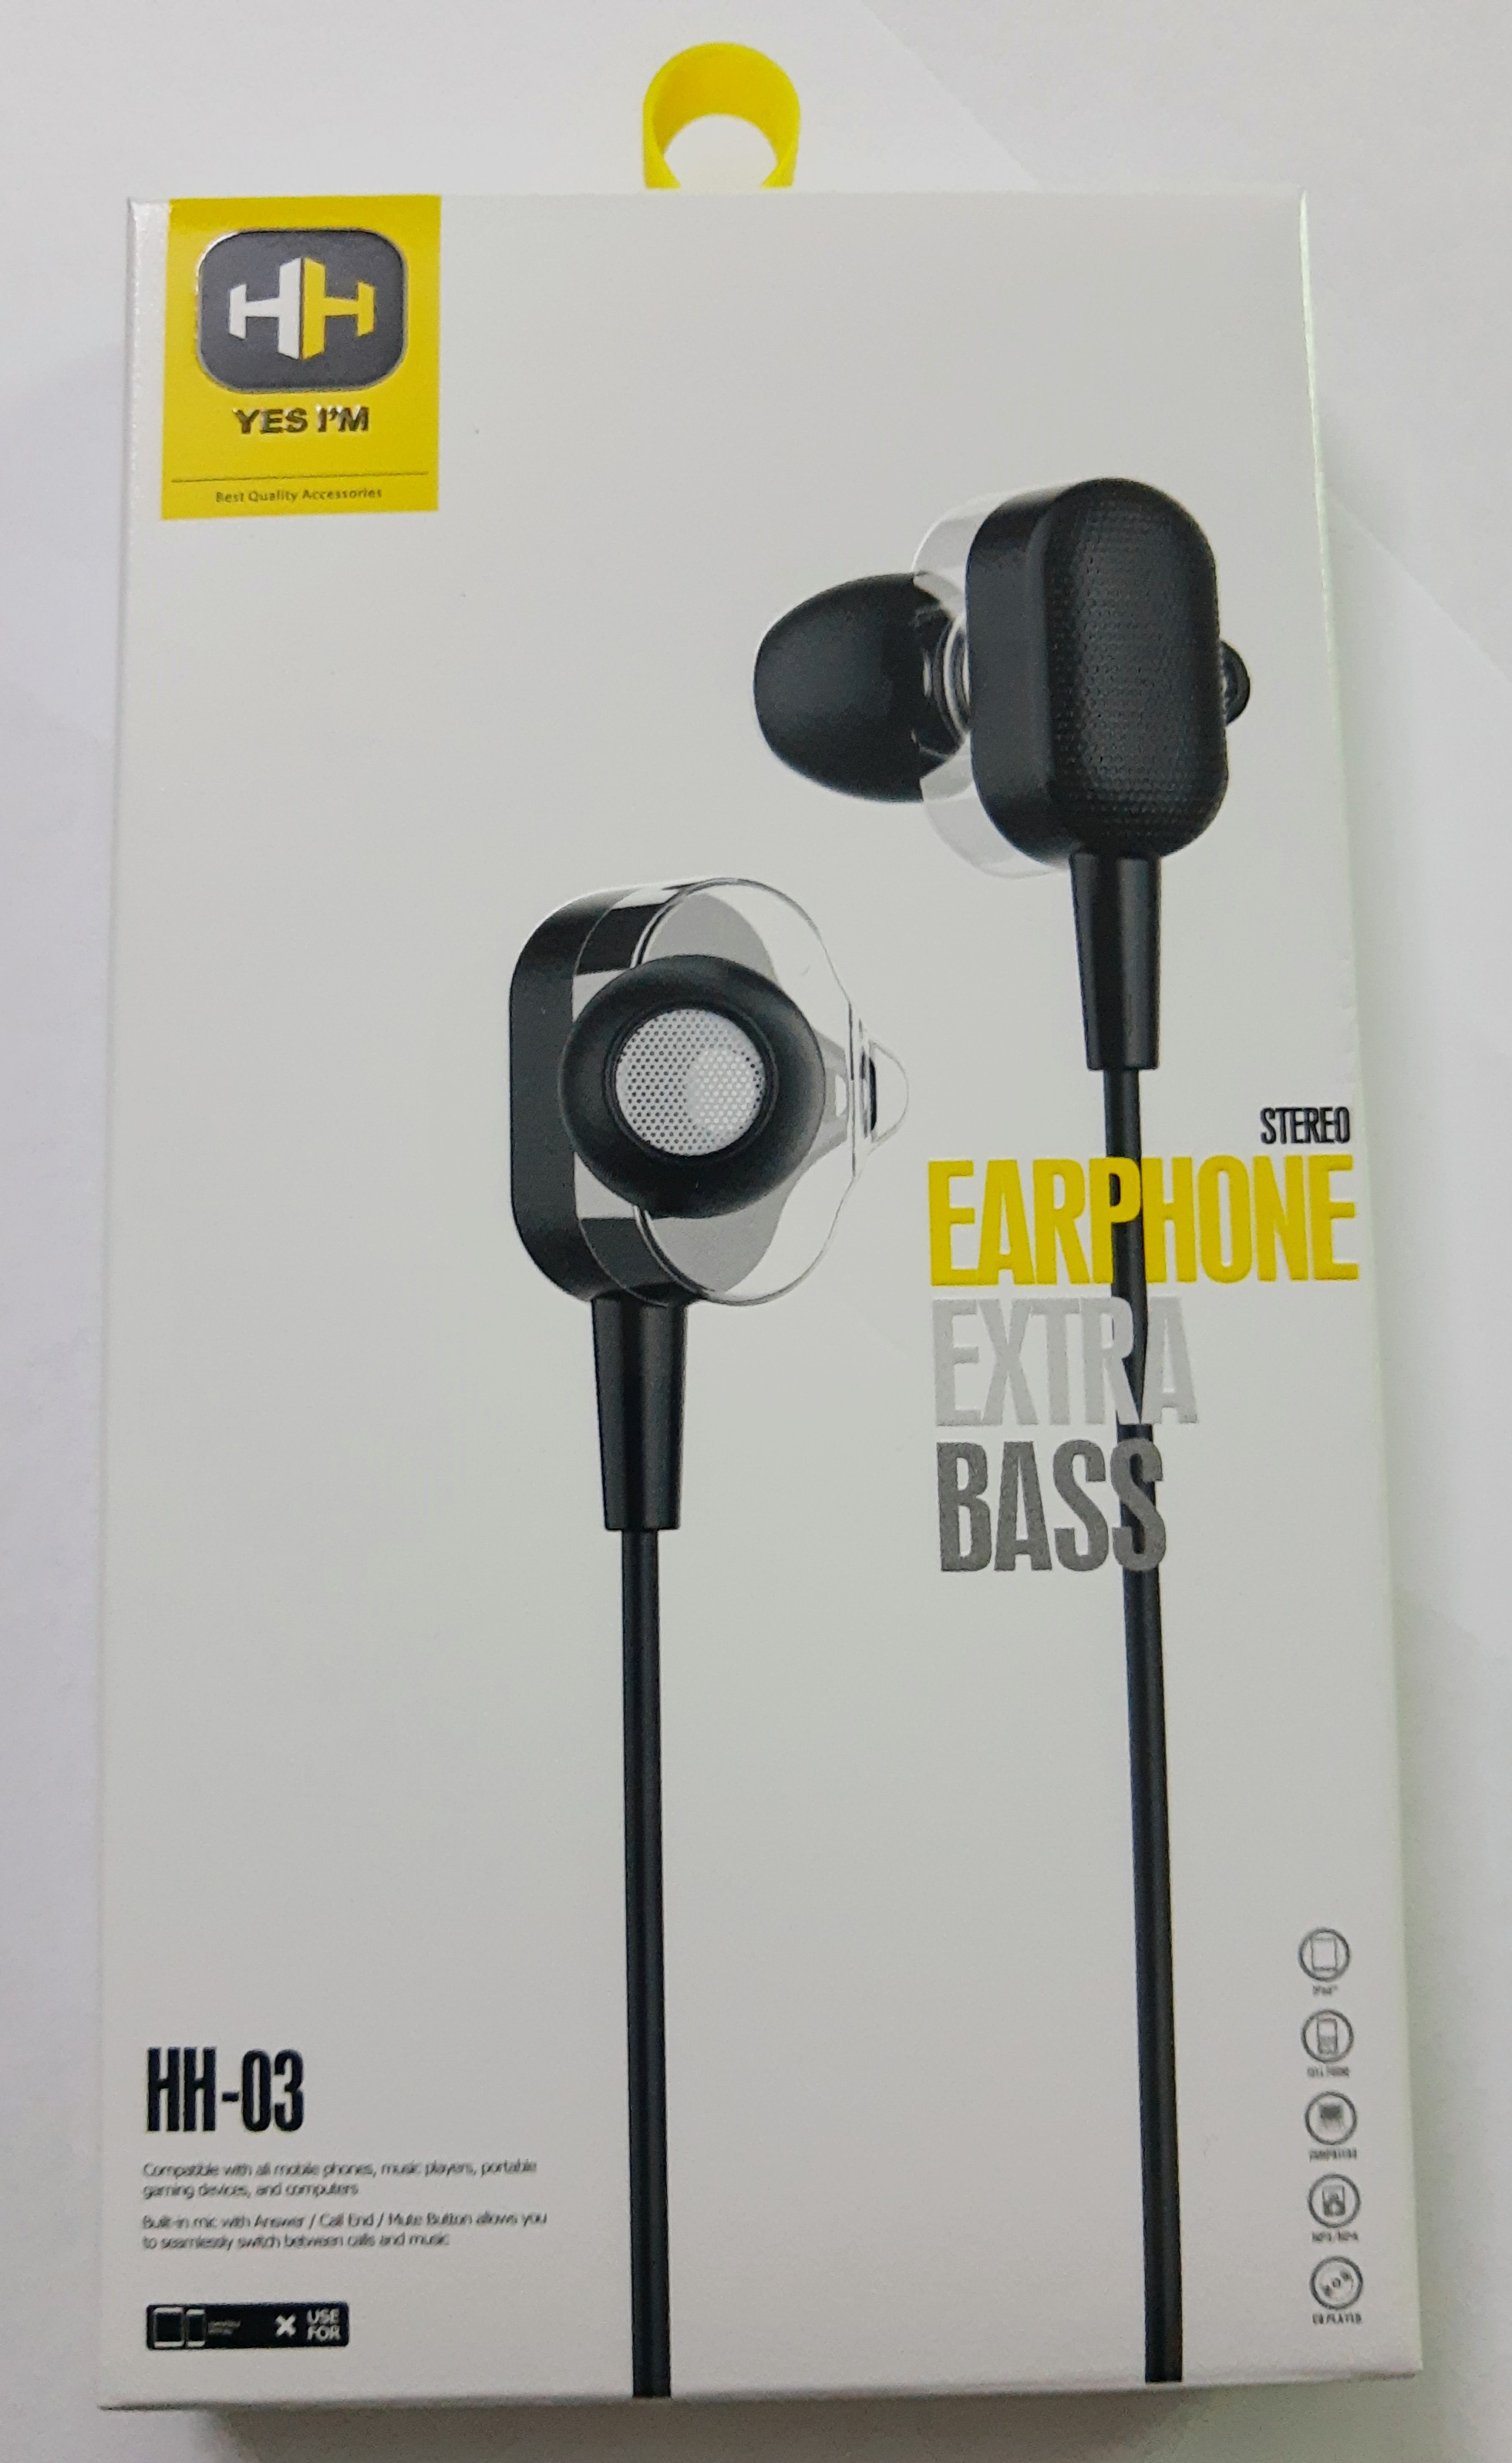 Extra Deep Bass Stereo Earphones, handsfree 3.5mm for music and gaming